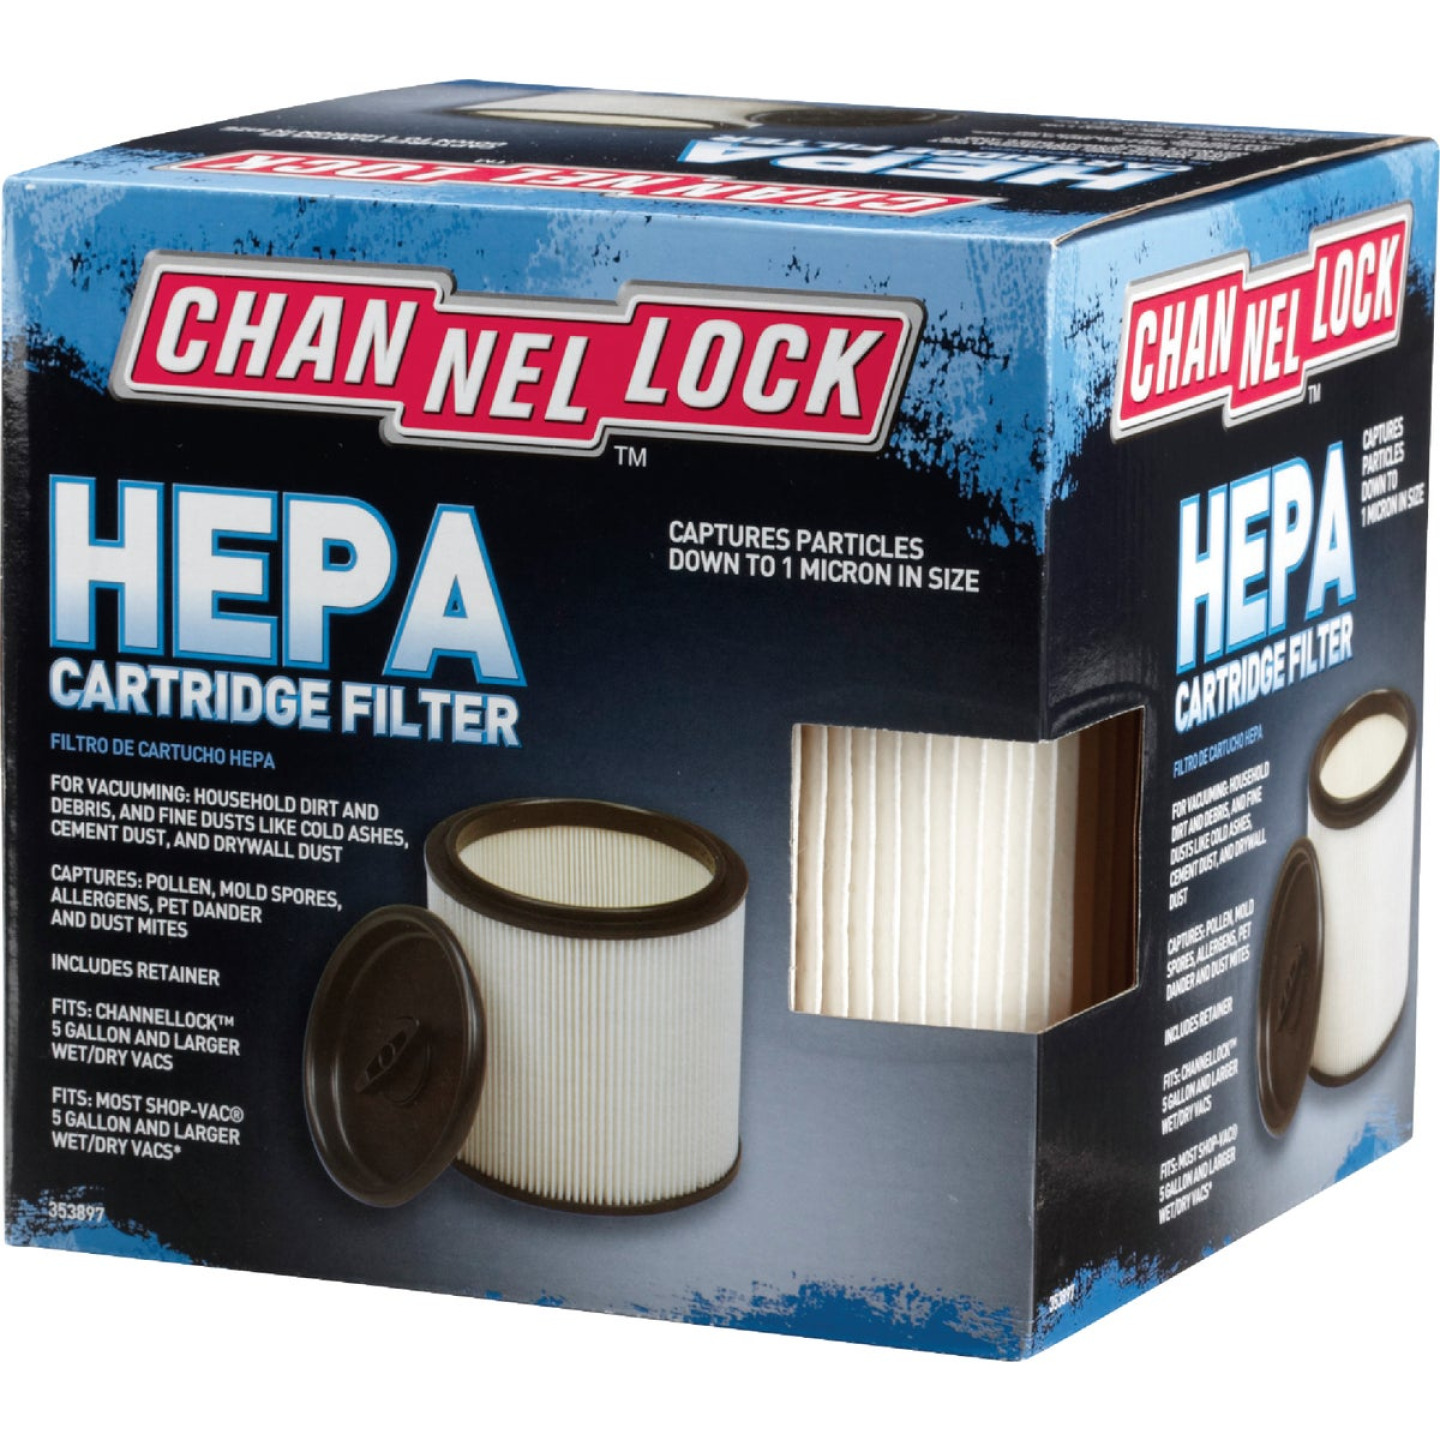 Channellock Cartridge HEPA 5 to 20 Gal. Vacuum Filter Image 2